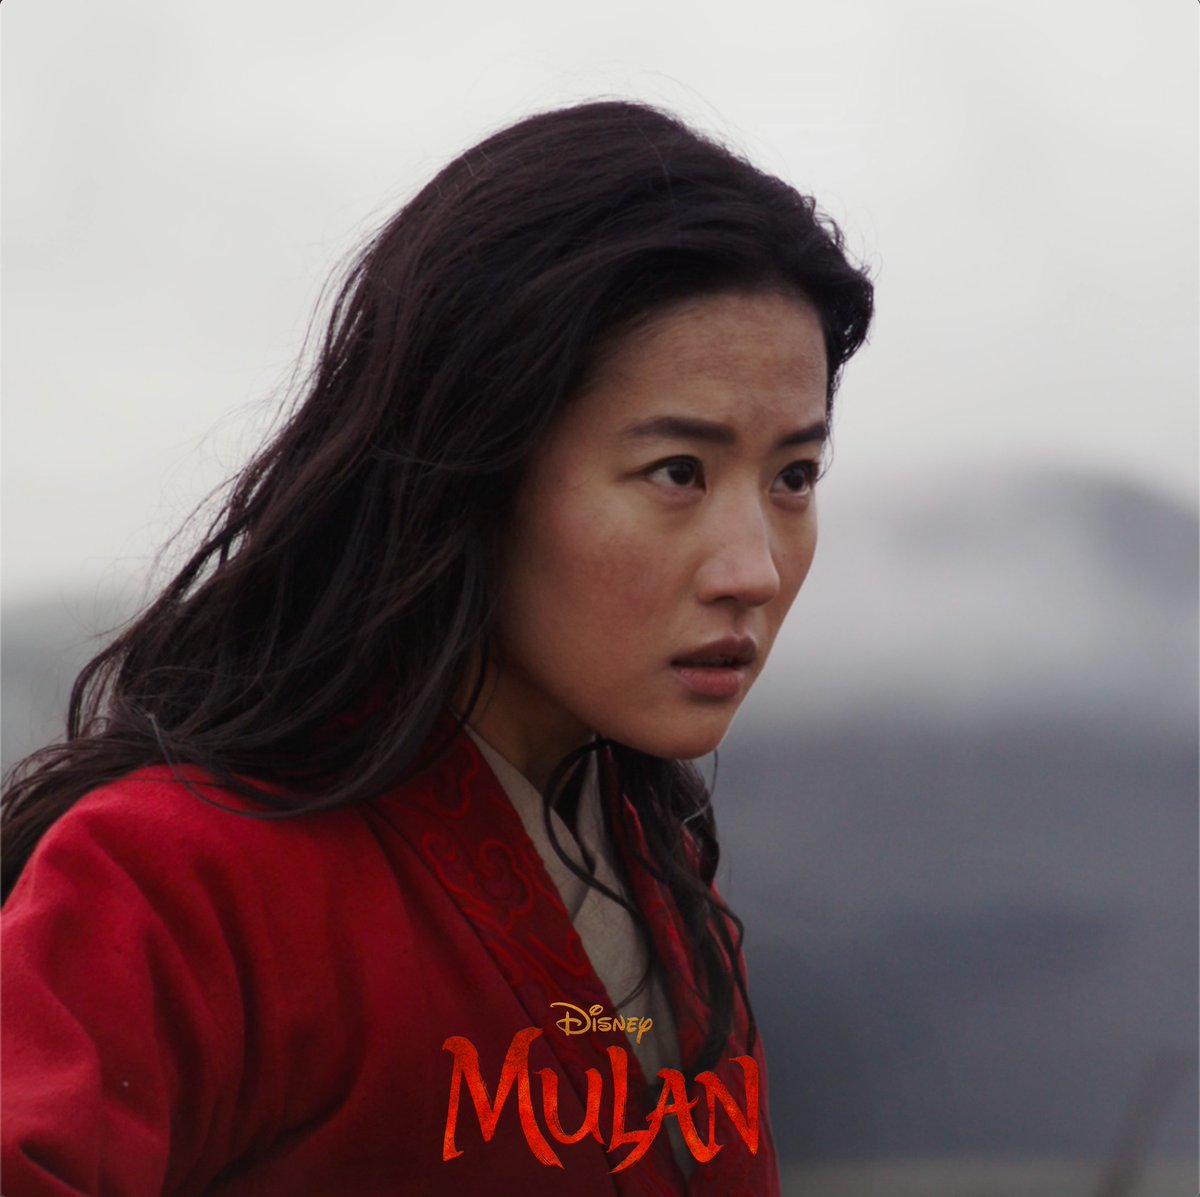 I will bring honor to us all. See Disneys #Mulan in theaters March 27.